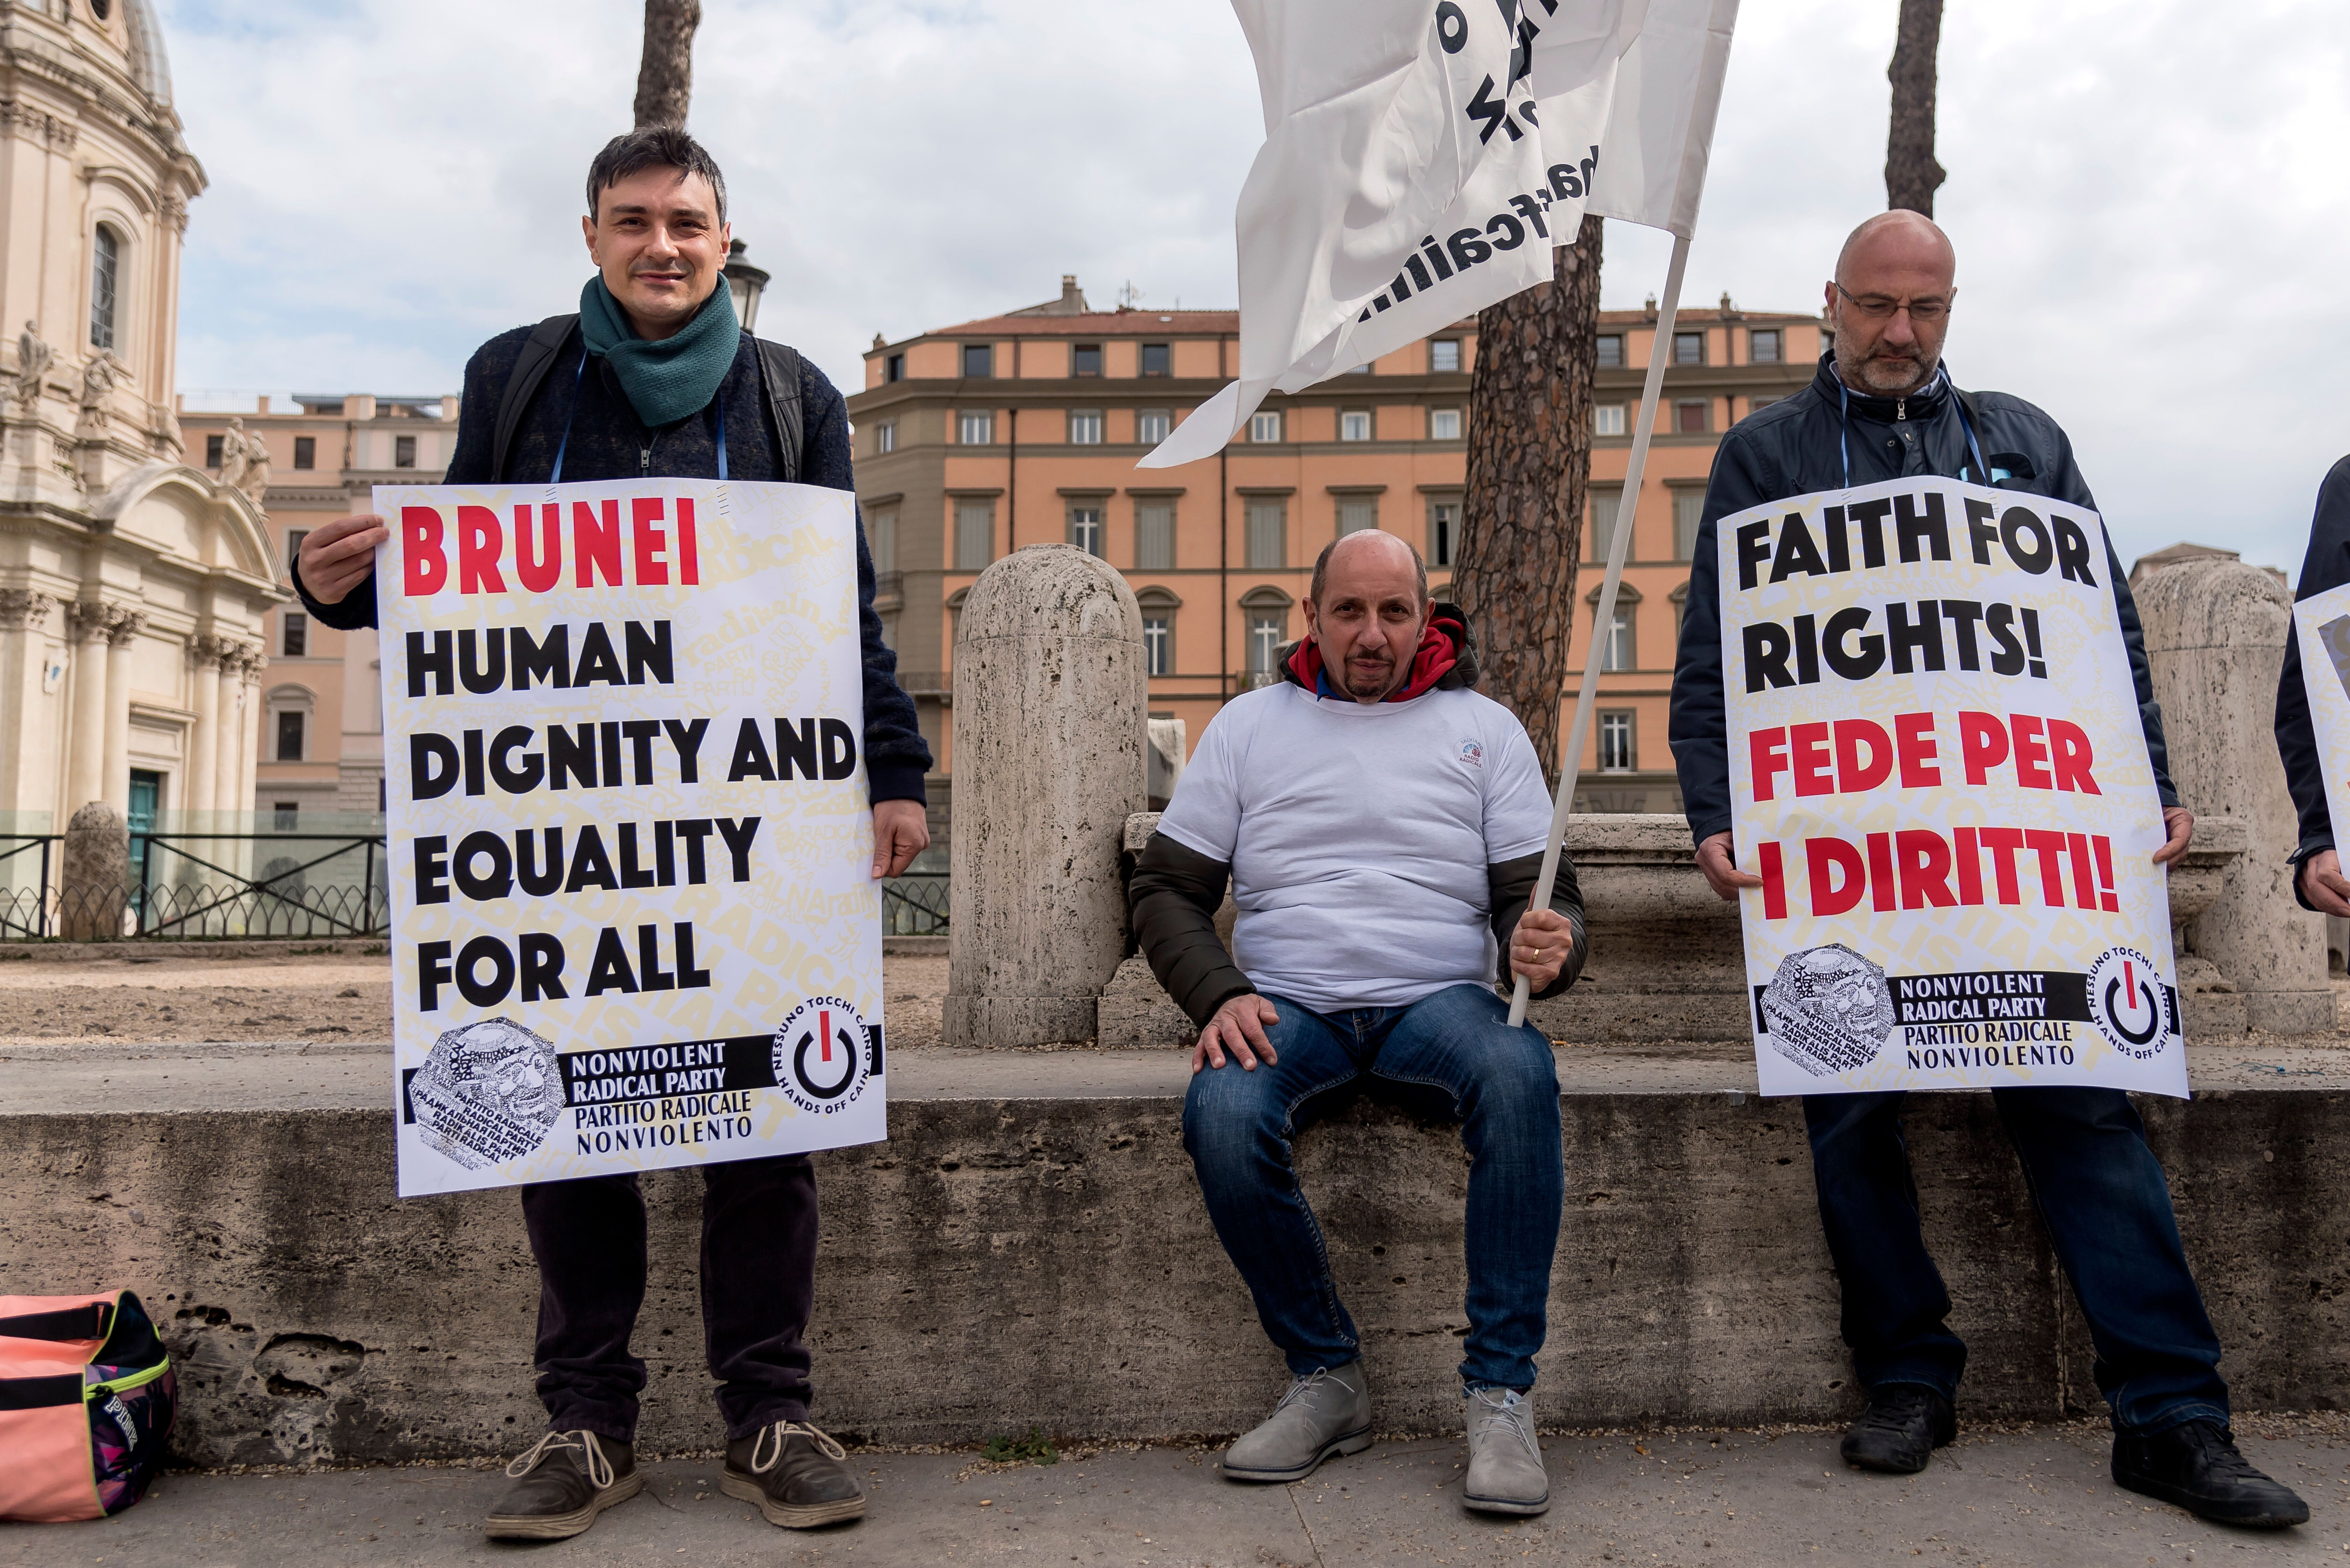 ROME, ITALY - APRIL 3: Radical Party activists are demonstrating against the introduction of Sharia, the Koranic law, in Brunei Darussalam, which also provides for stoning for homosexuals on April 3, 2019 in Rome, Italy. (Photo by Stefano Montesi - Corbis/Getty Images)